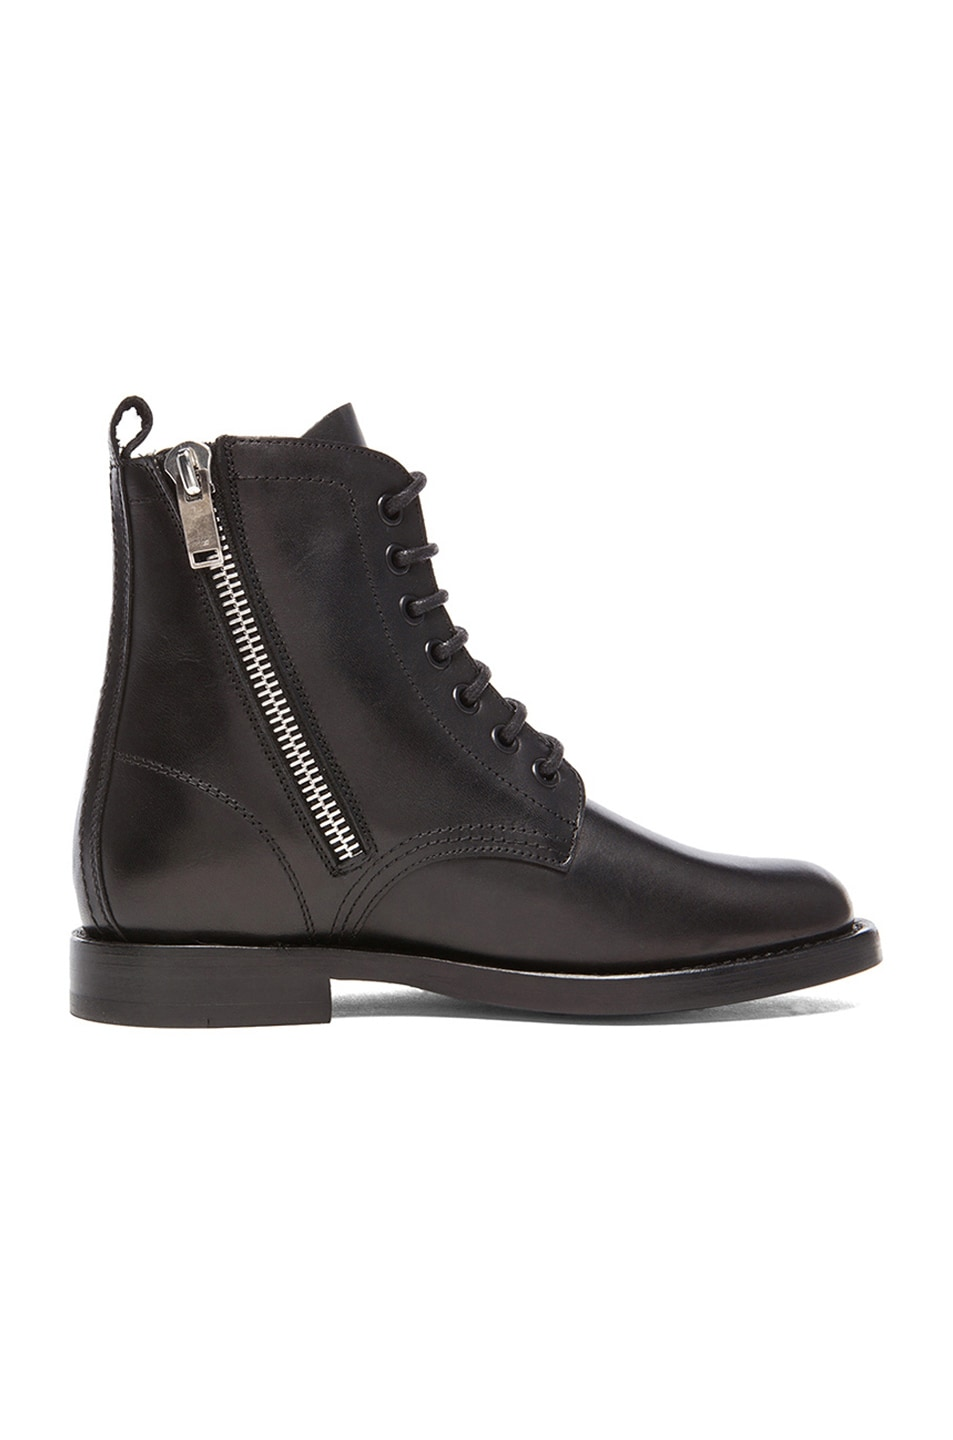 Image 5 of Saint Laurent Leather Ranger Zipper Combat Leather Boots in Black